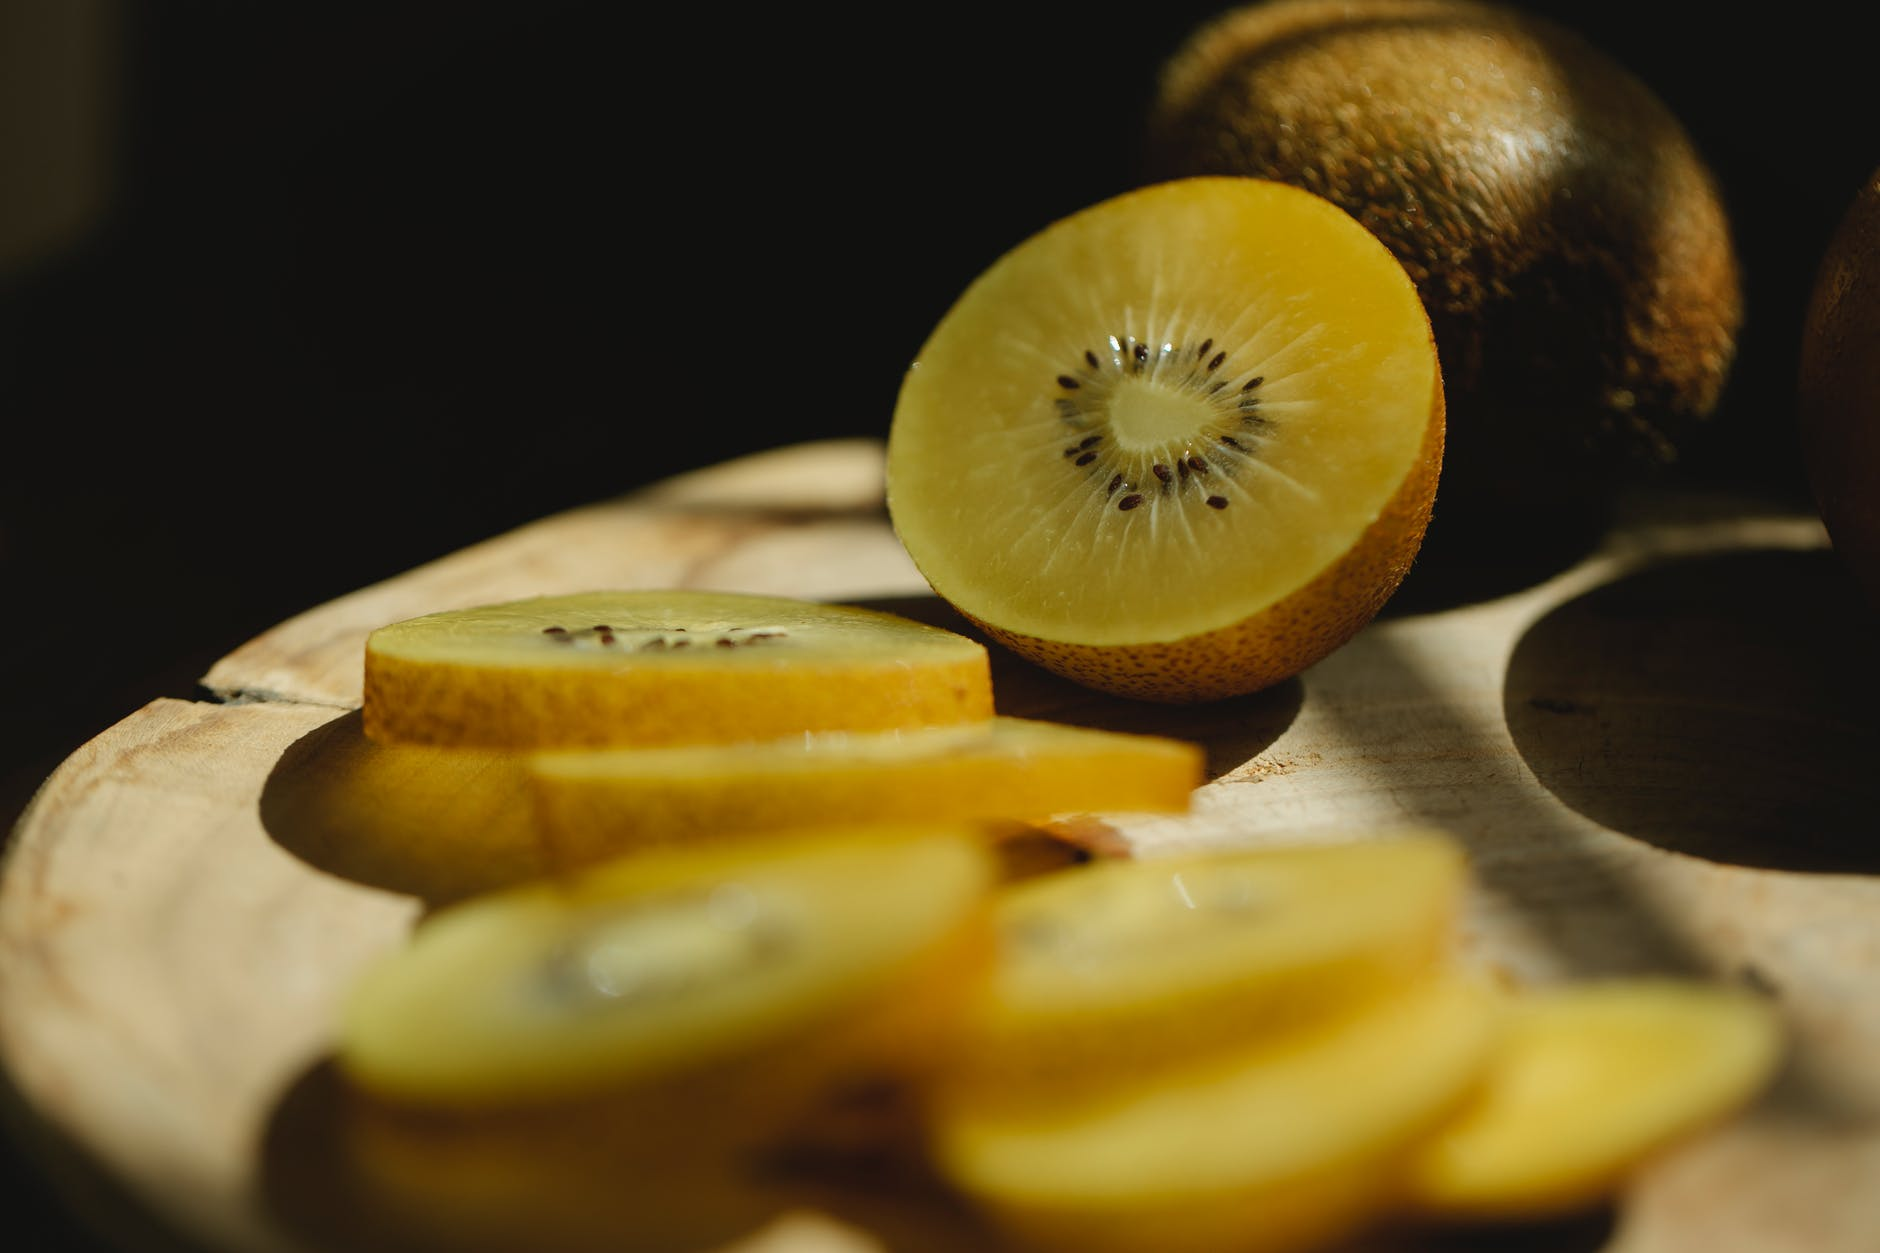 sliced kiwi with juicy pulp on table